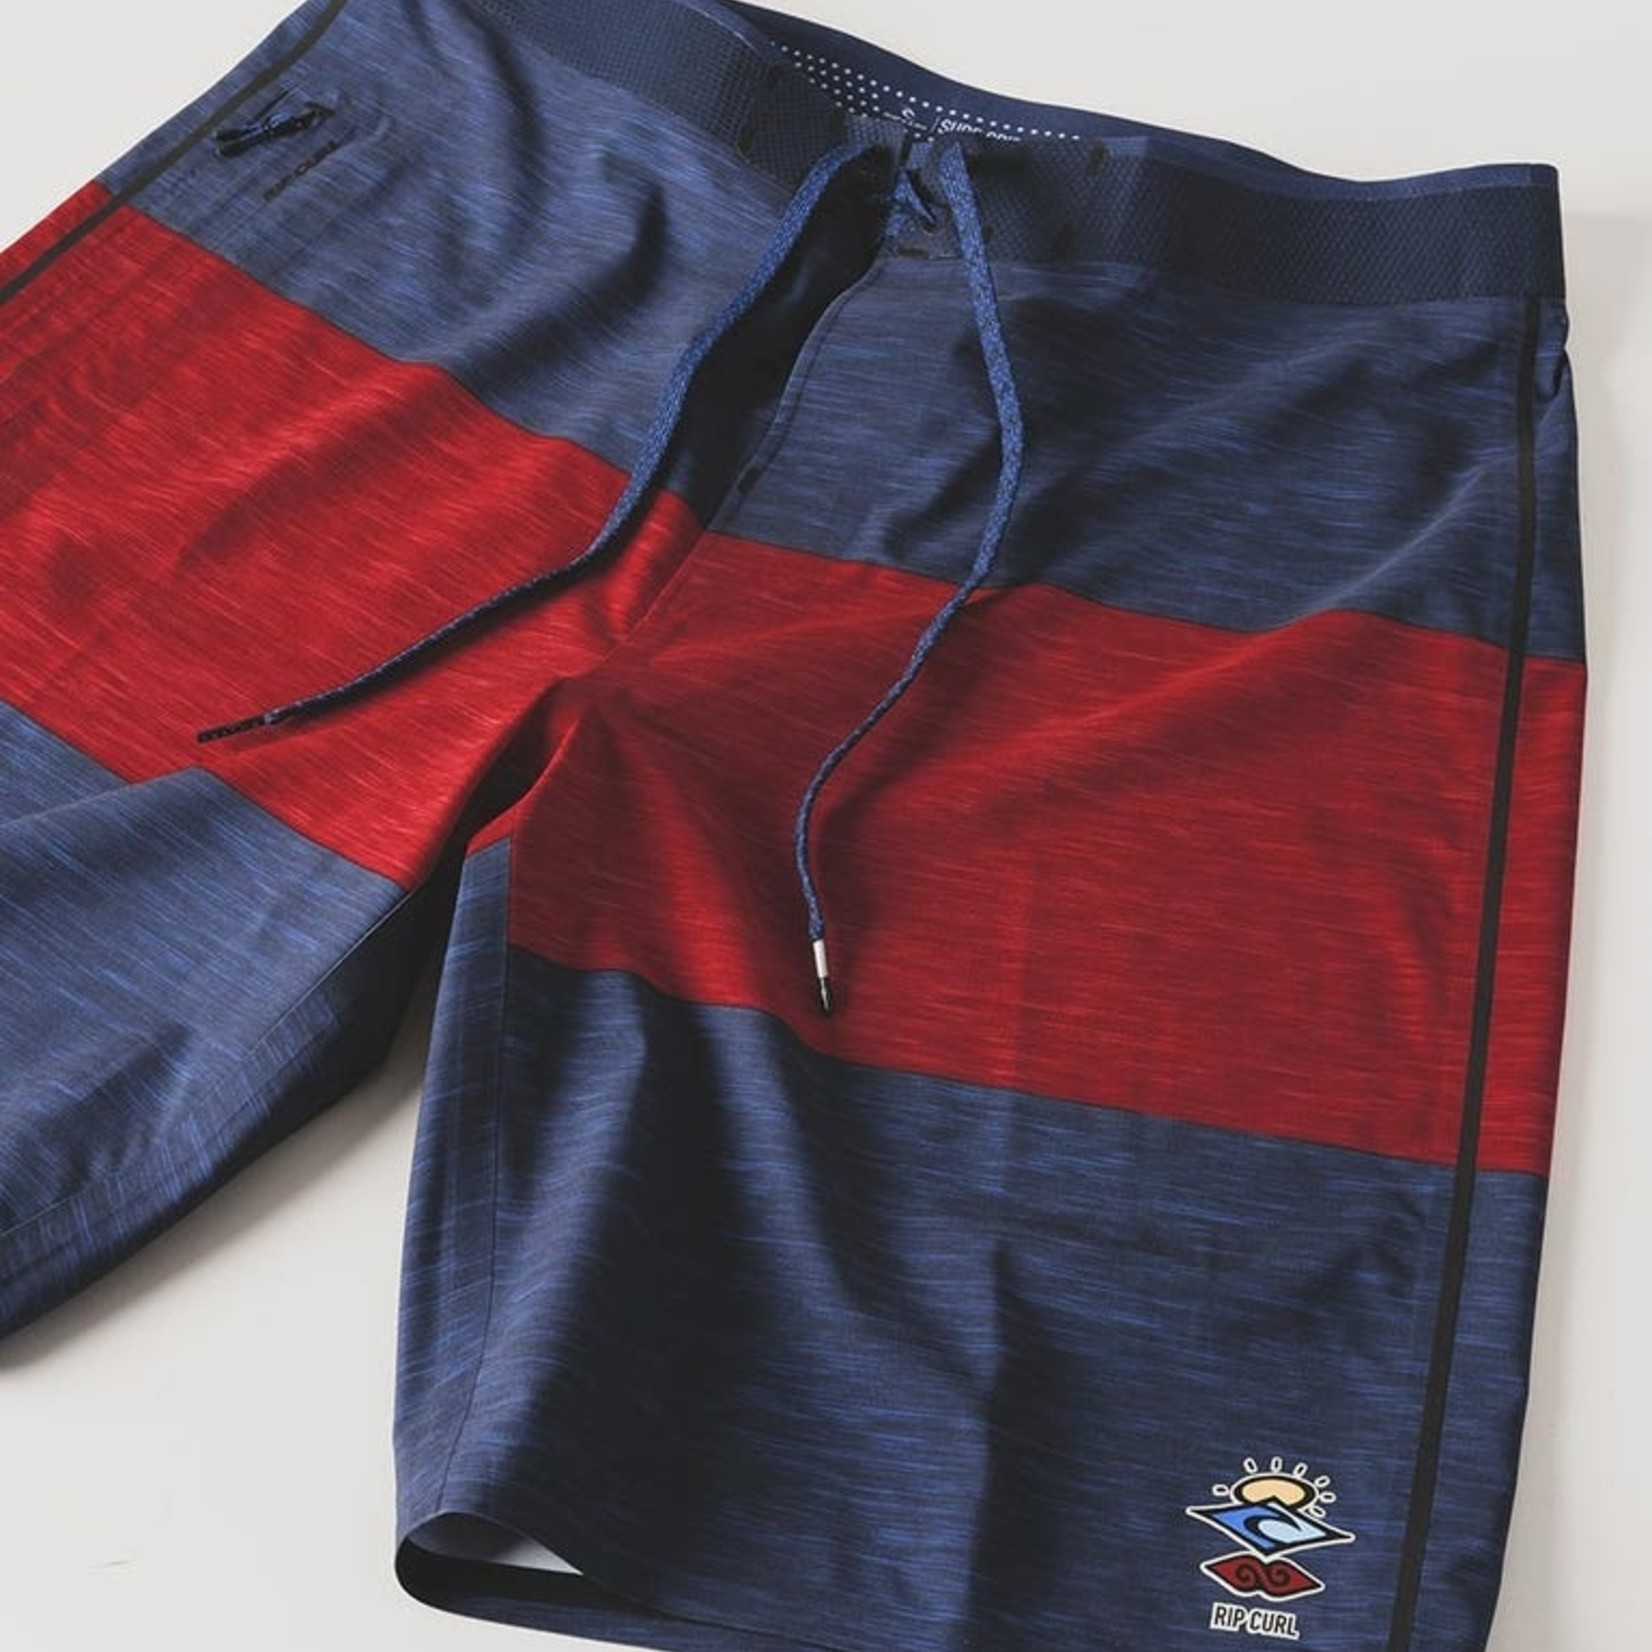 RipCurl Rip Curl Mick Fanning Ultimate Divisions Mirage Boardshorts